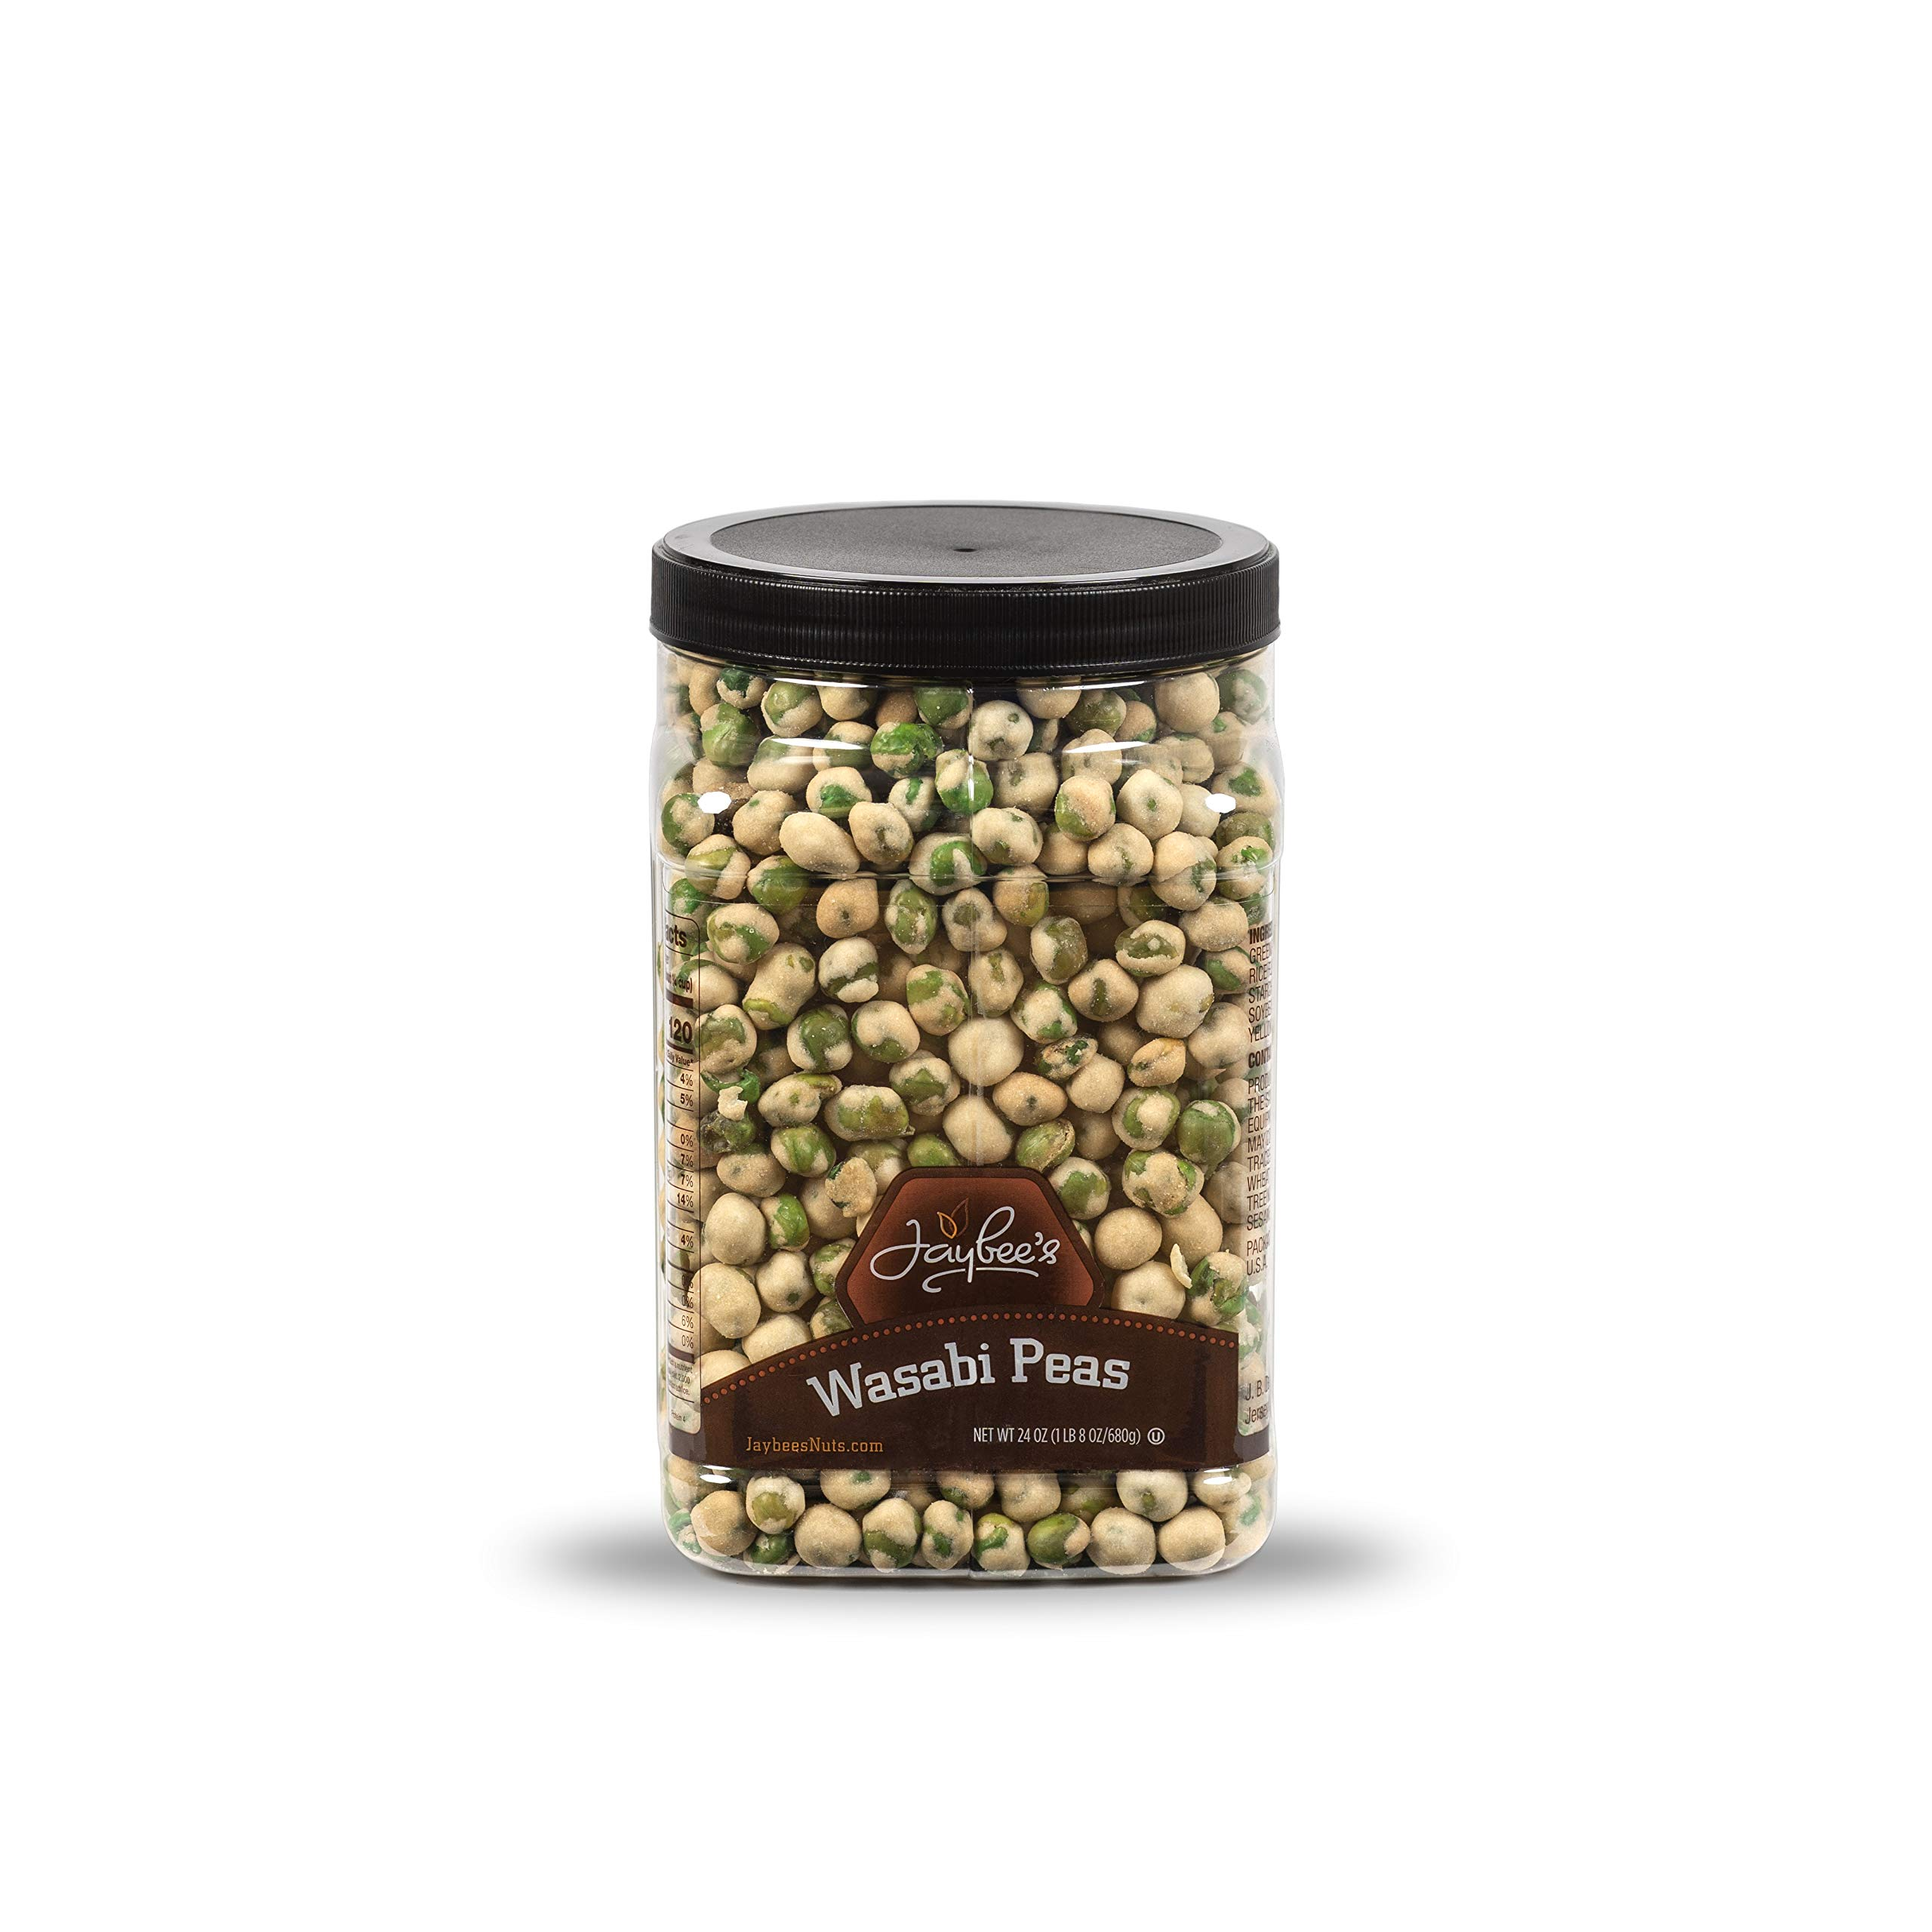 Wasabi Peas - (24 oz) Great Crunchy Spicy Snack for Daily Use - Plenty to Share - Reusable Jar Kosher Certified by Jaybee's Nuts by Jaybee's